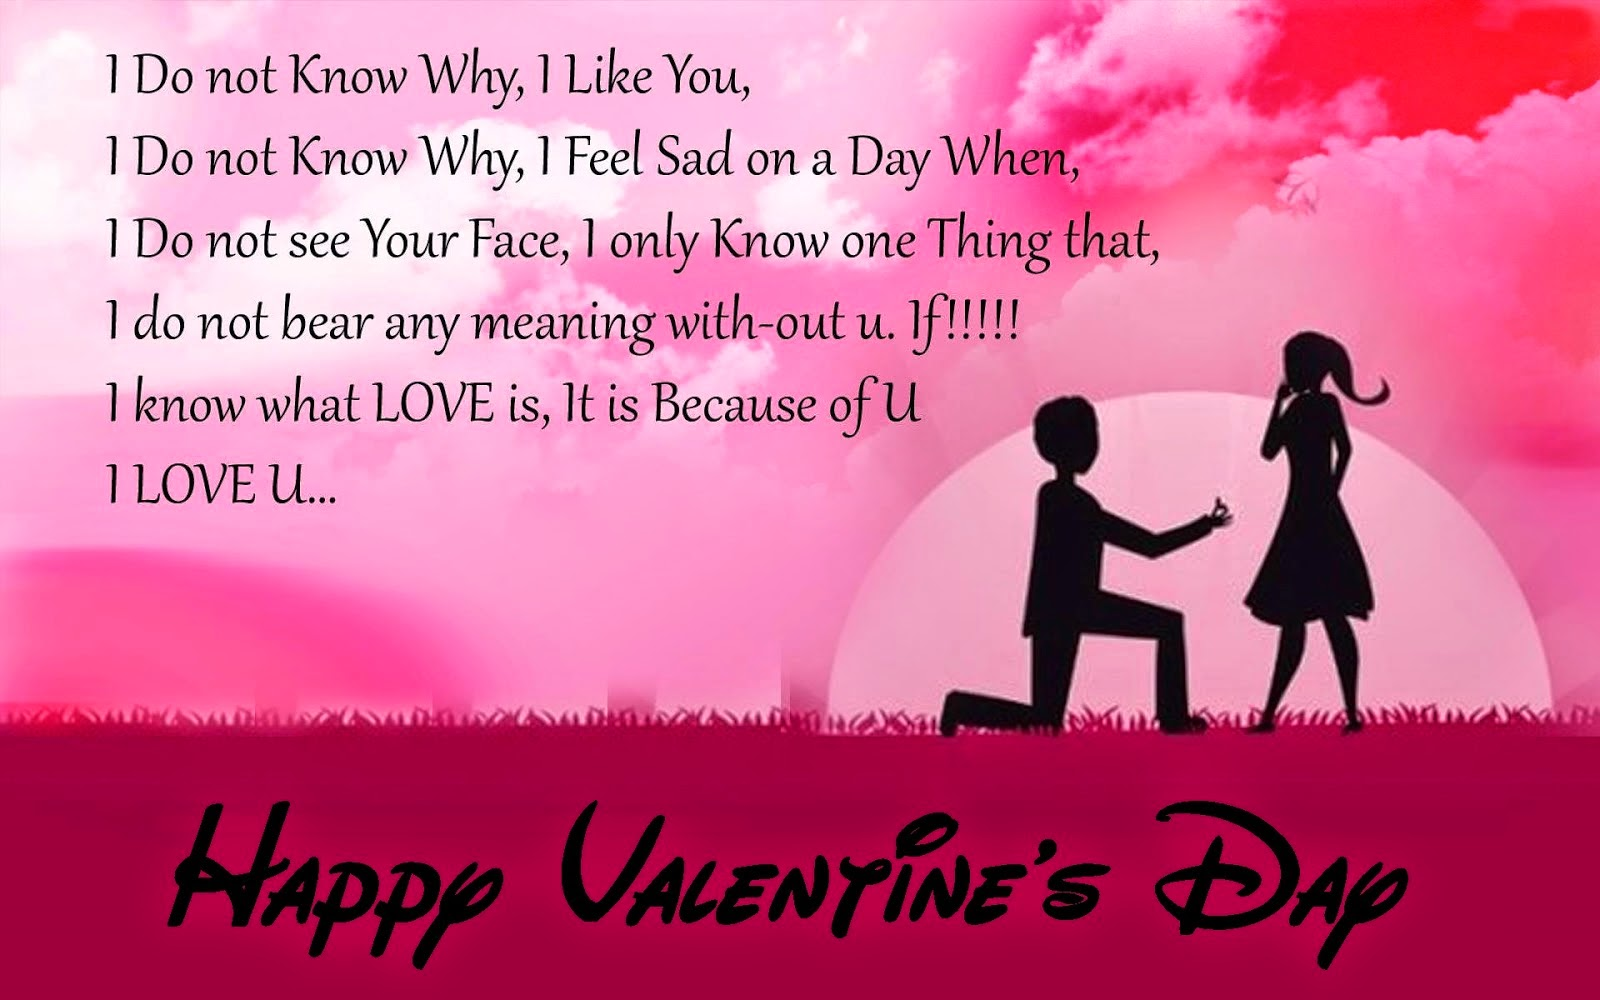 romantic valentines day card messages for your wife